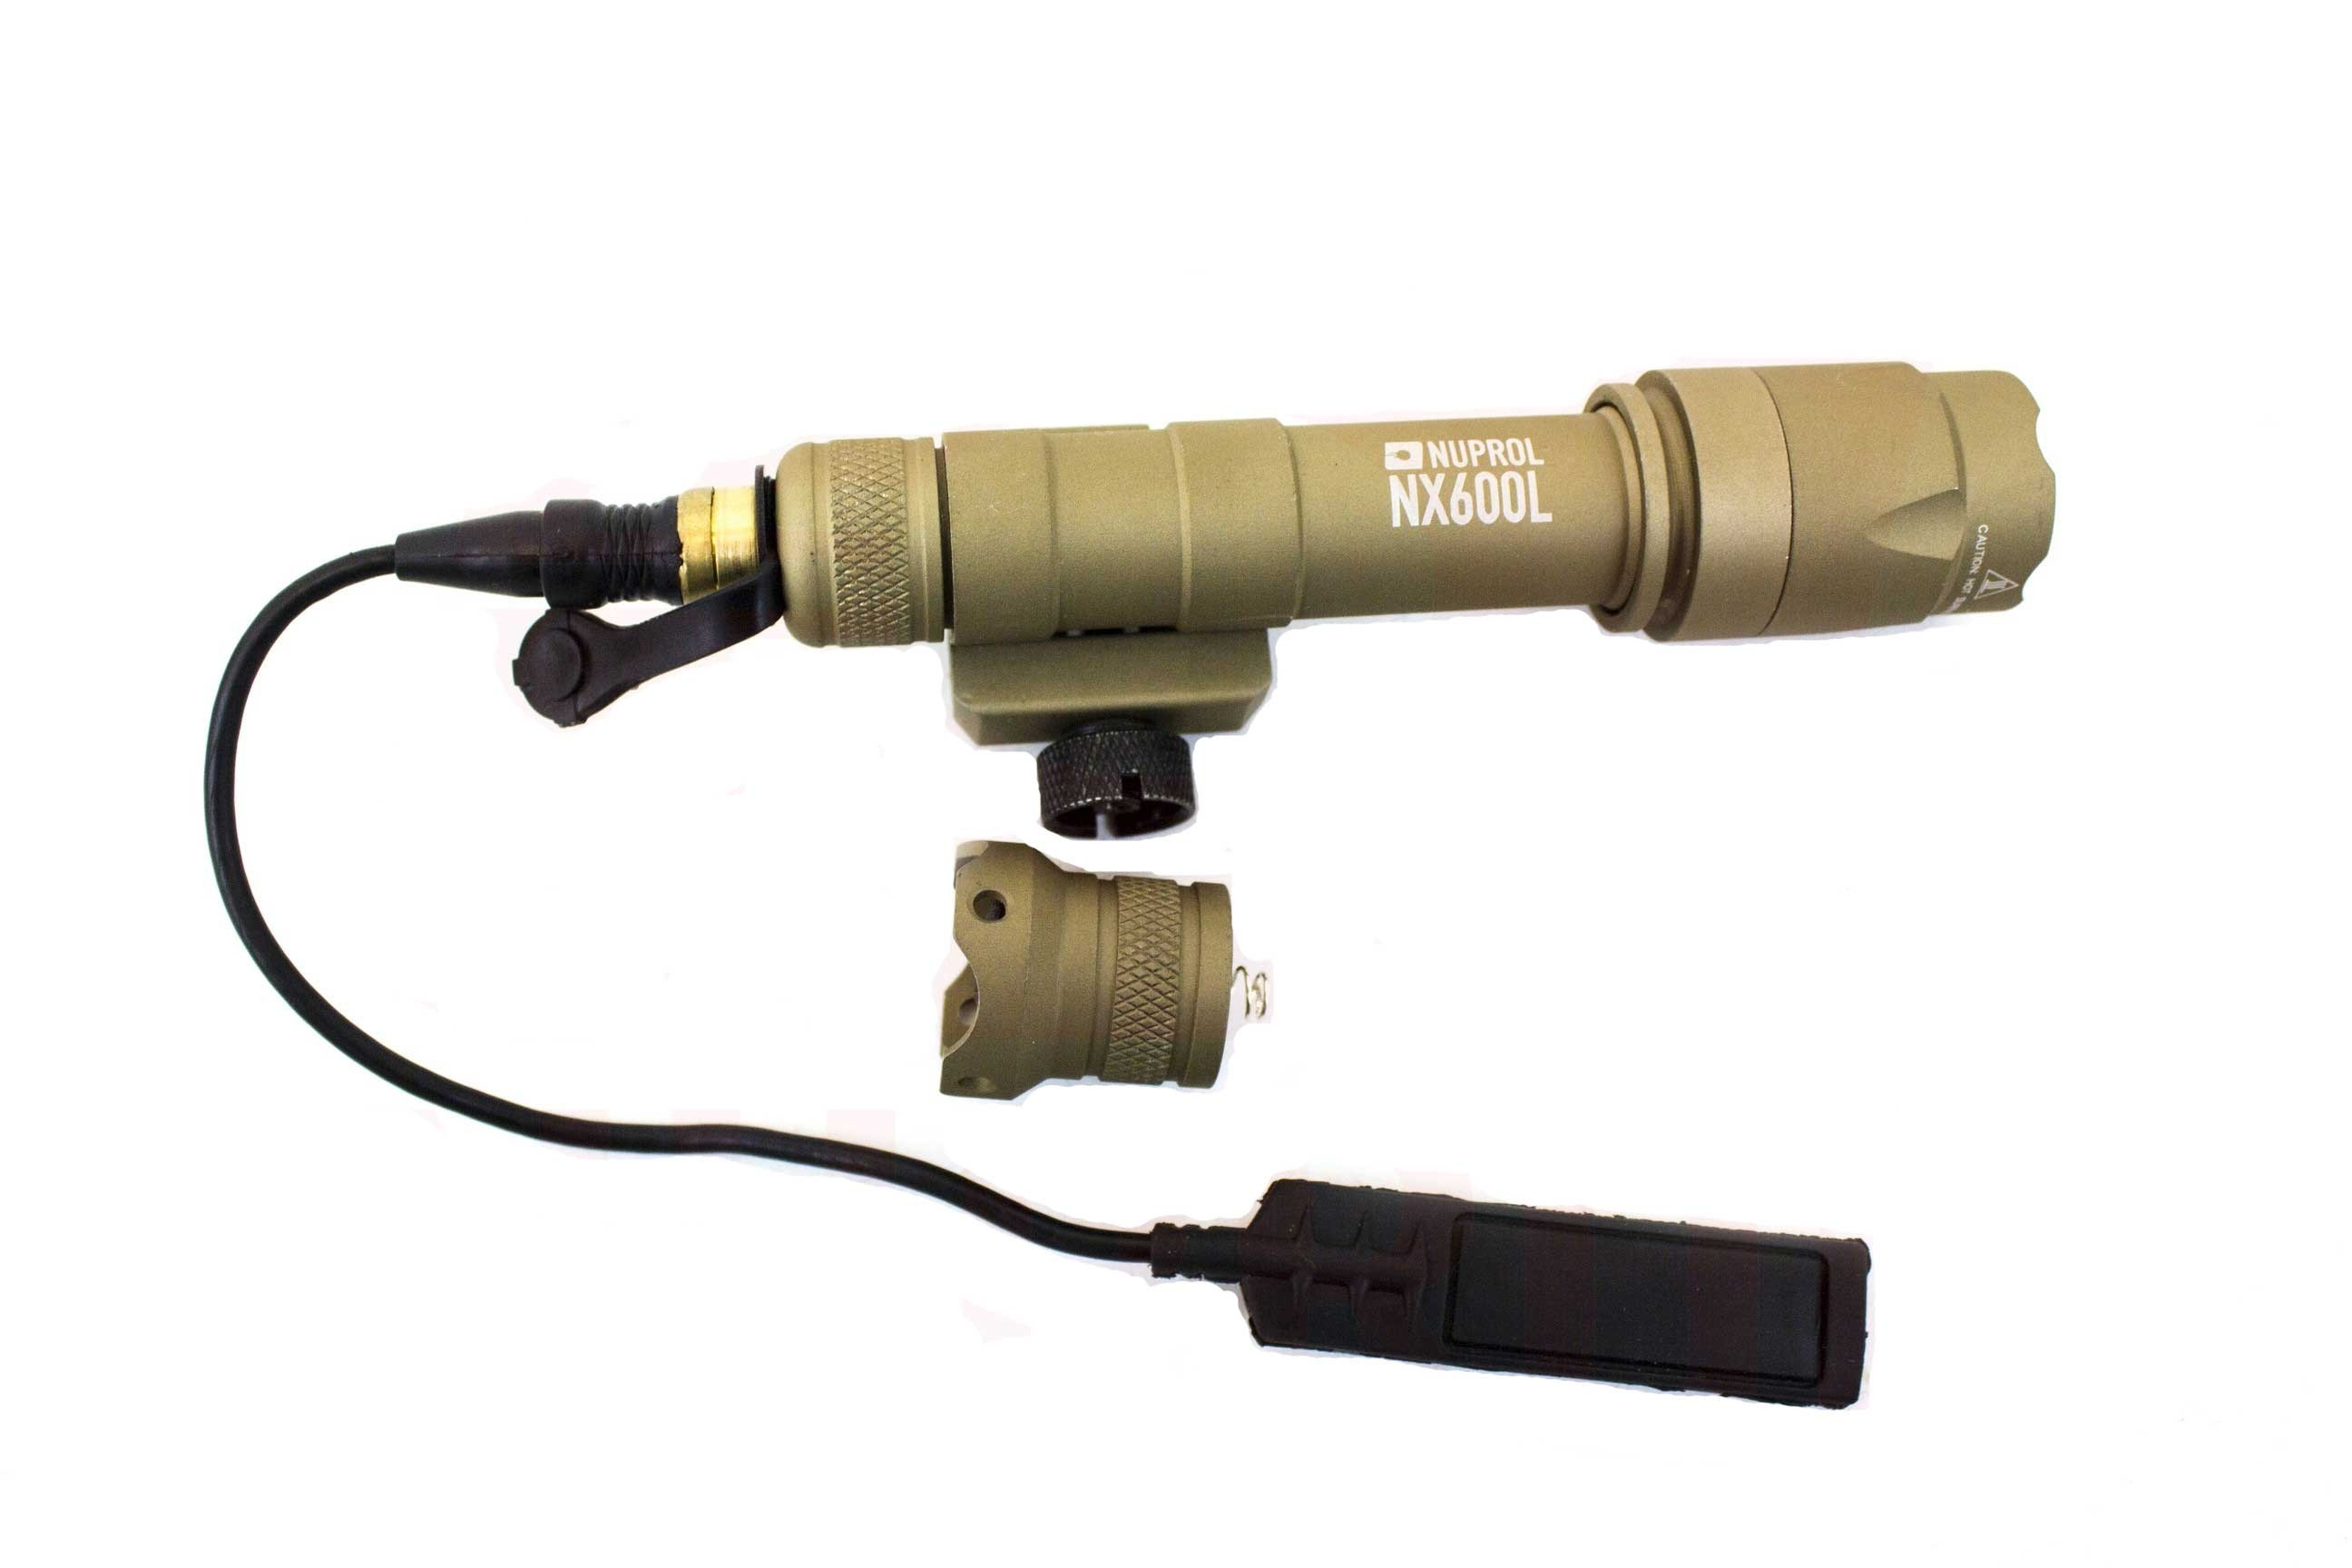 Nuprol Torch NX600L - Tan